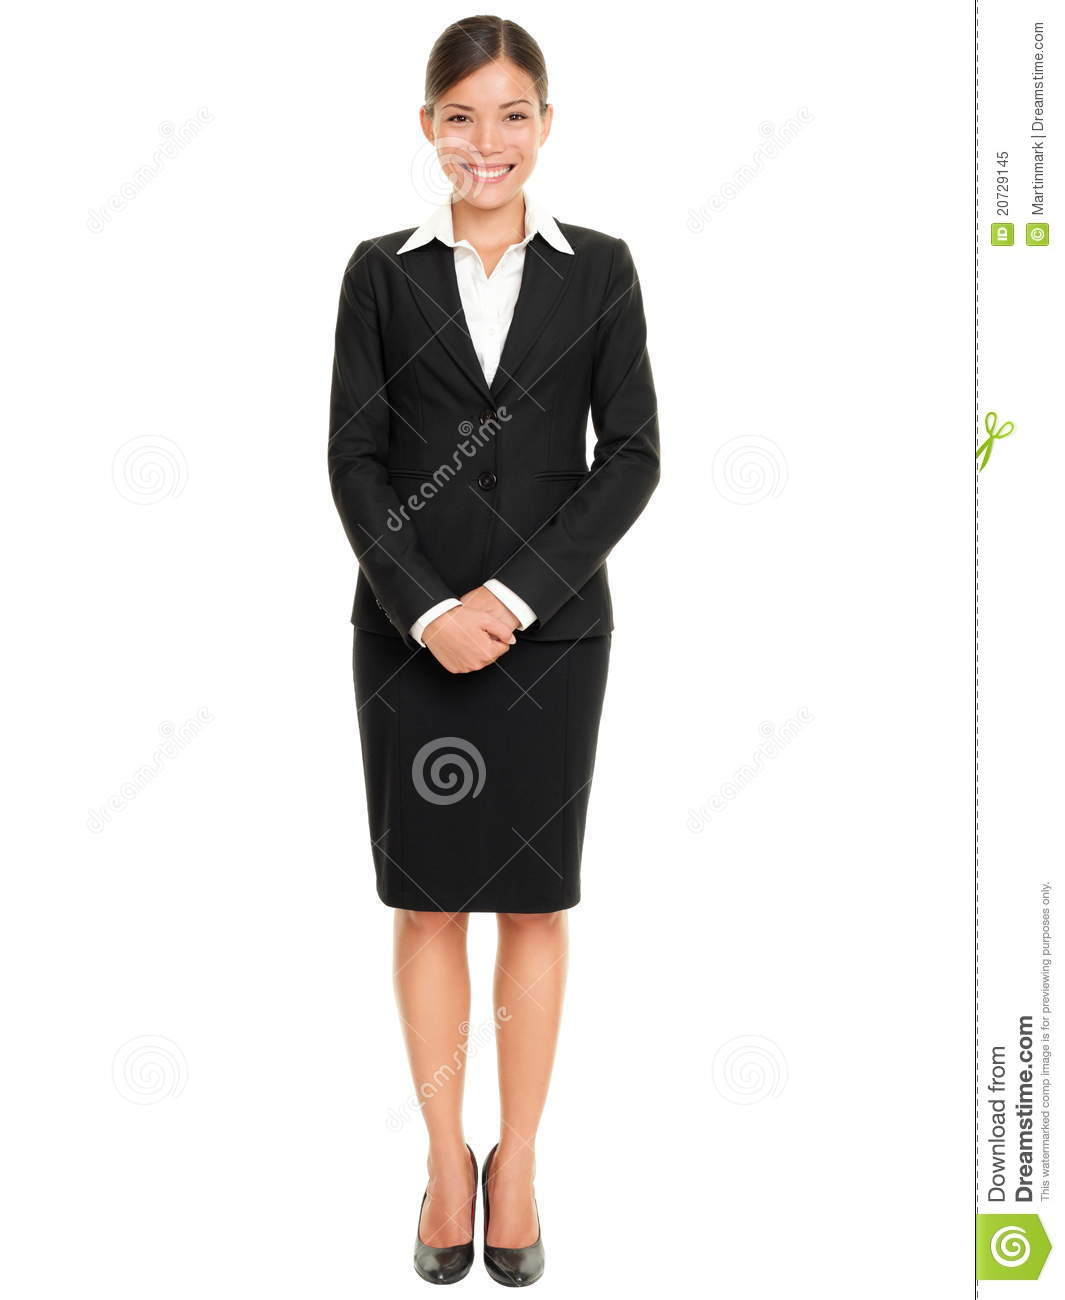 business-people-business-woman-standing-20729145.jpg